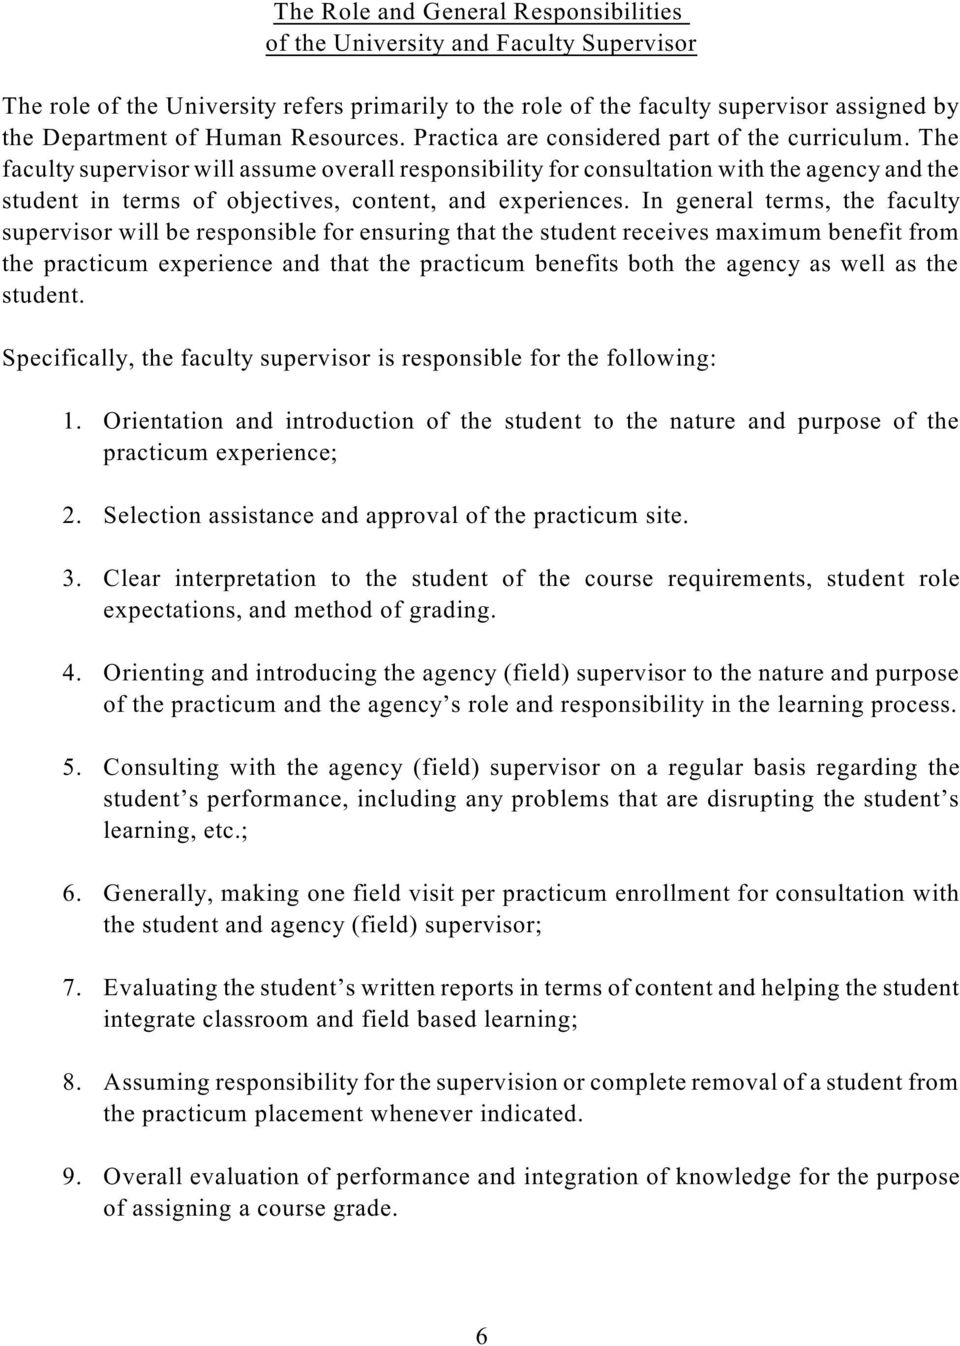 The faculty supervisor will assume overall responsibility for consultation with the agency and the student in terms of objectives, content, and experiences.